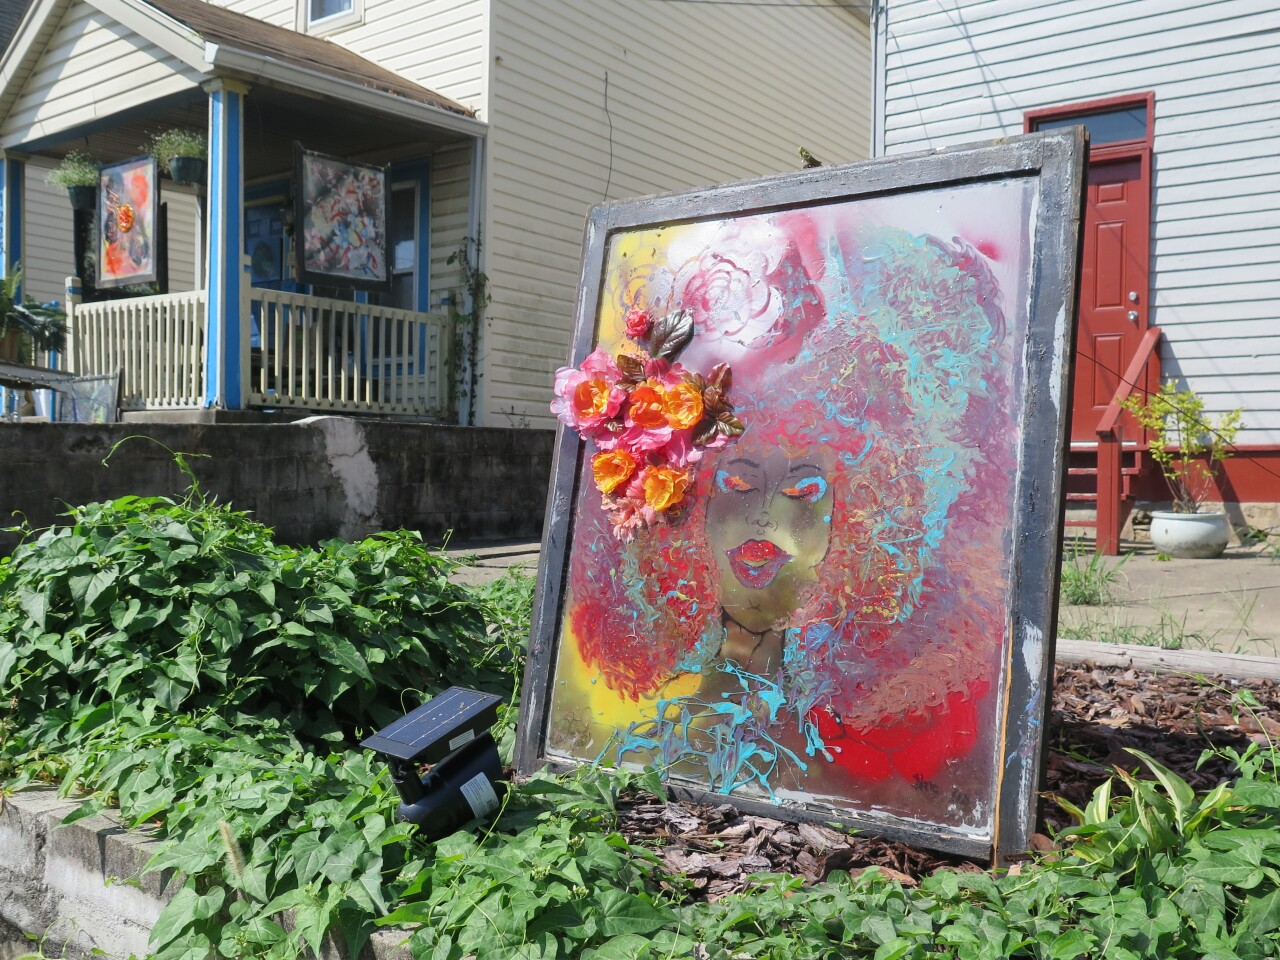 This photo features the window painted by Tashariea Harris and Nina Edwards with Edwards' home on the left. The window that Harris helped create has a portrait of a brown-skinned woman with red, blue and yellow hair.